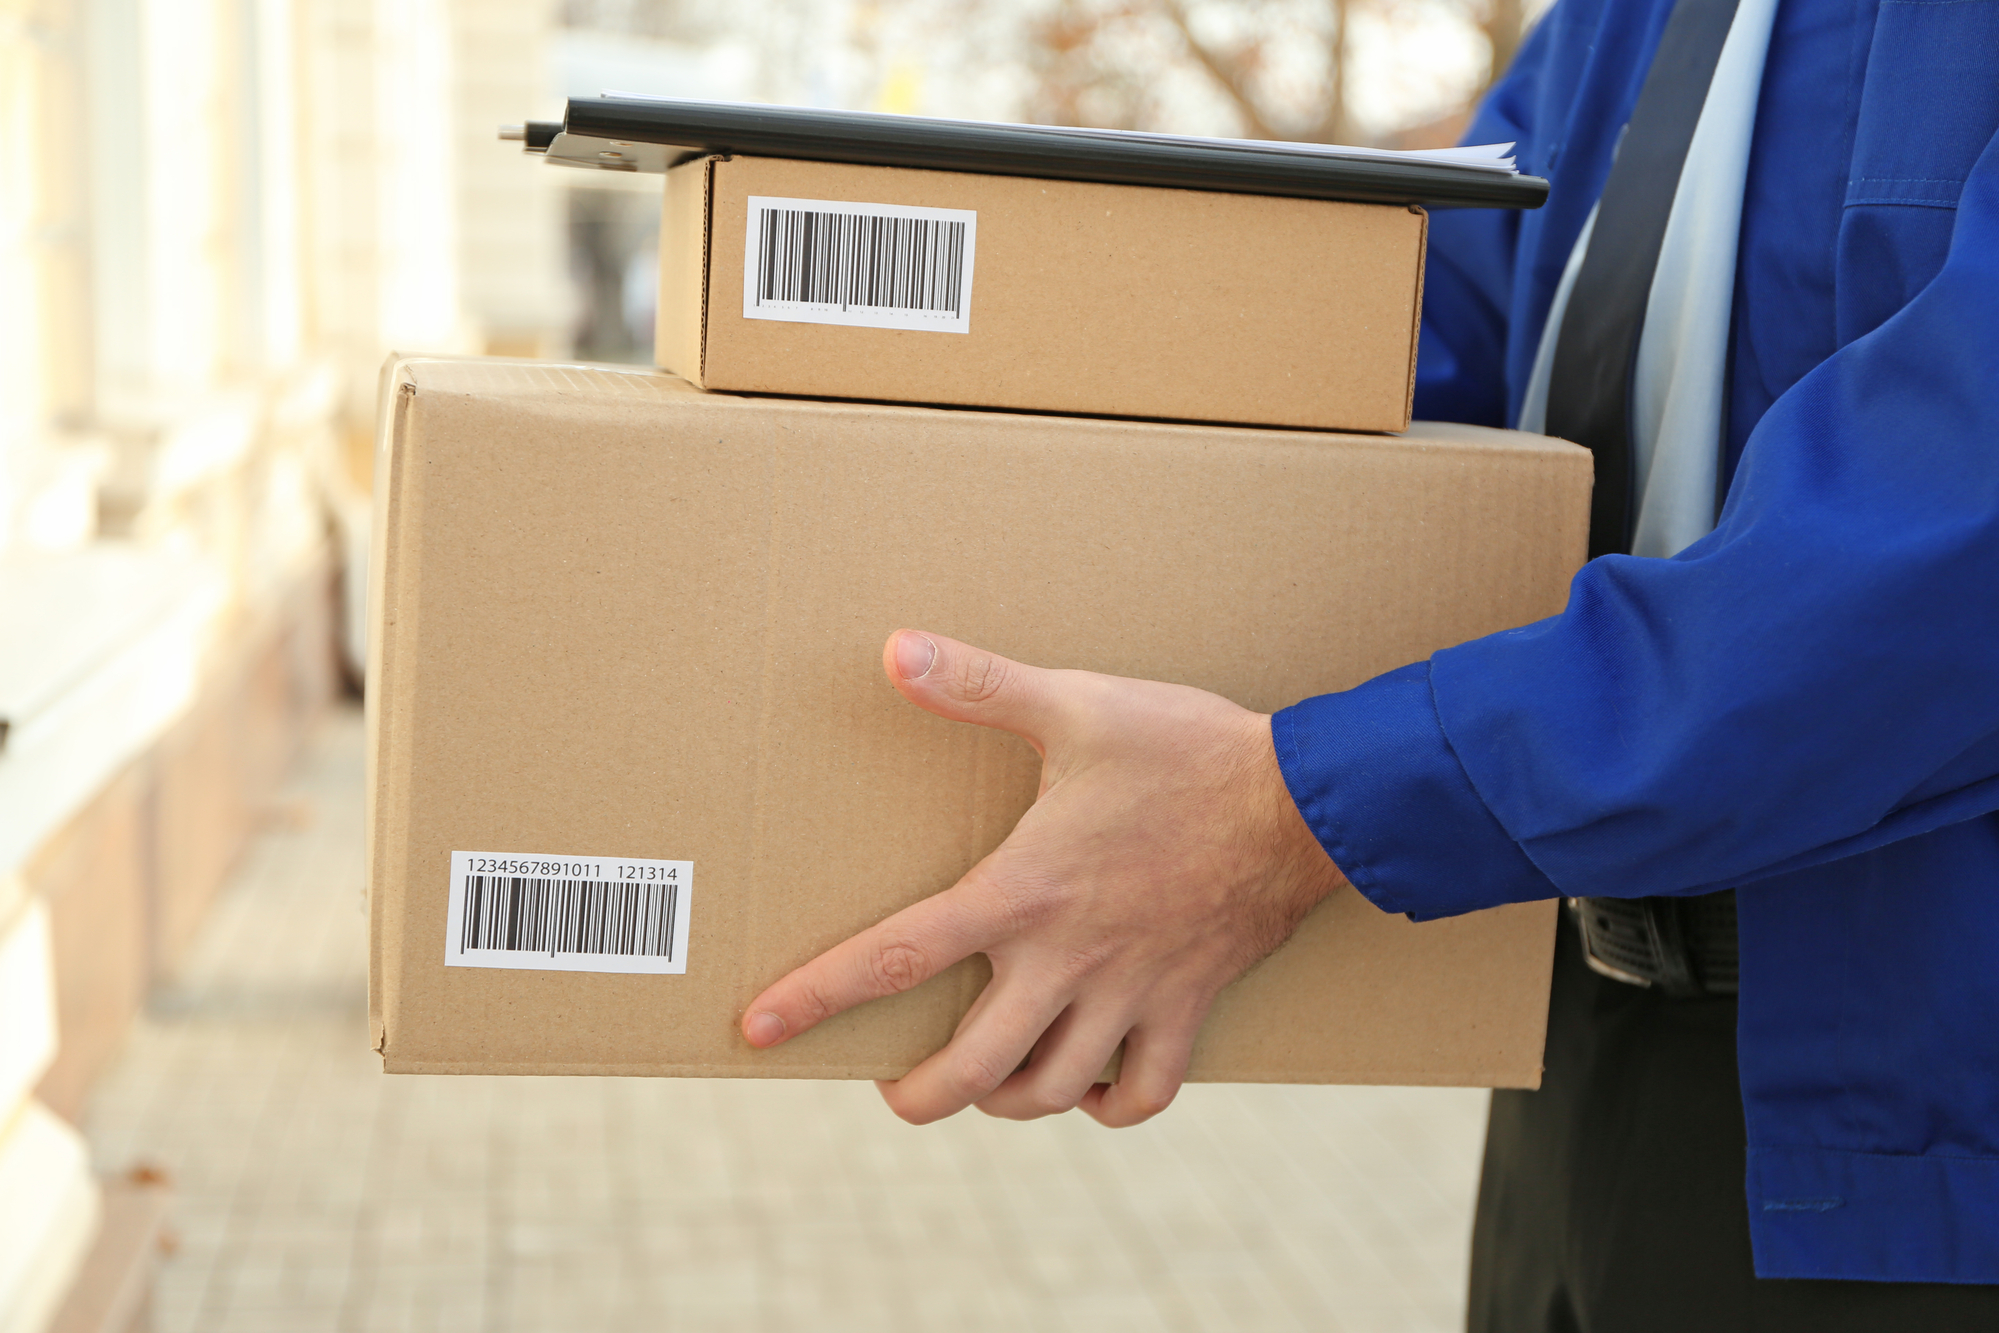 How To Overcome 10 Common E-commerce Shipping Fulfillment Issues